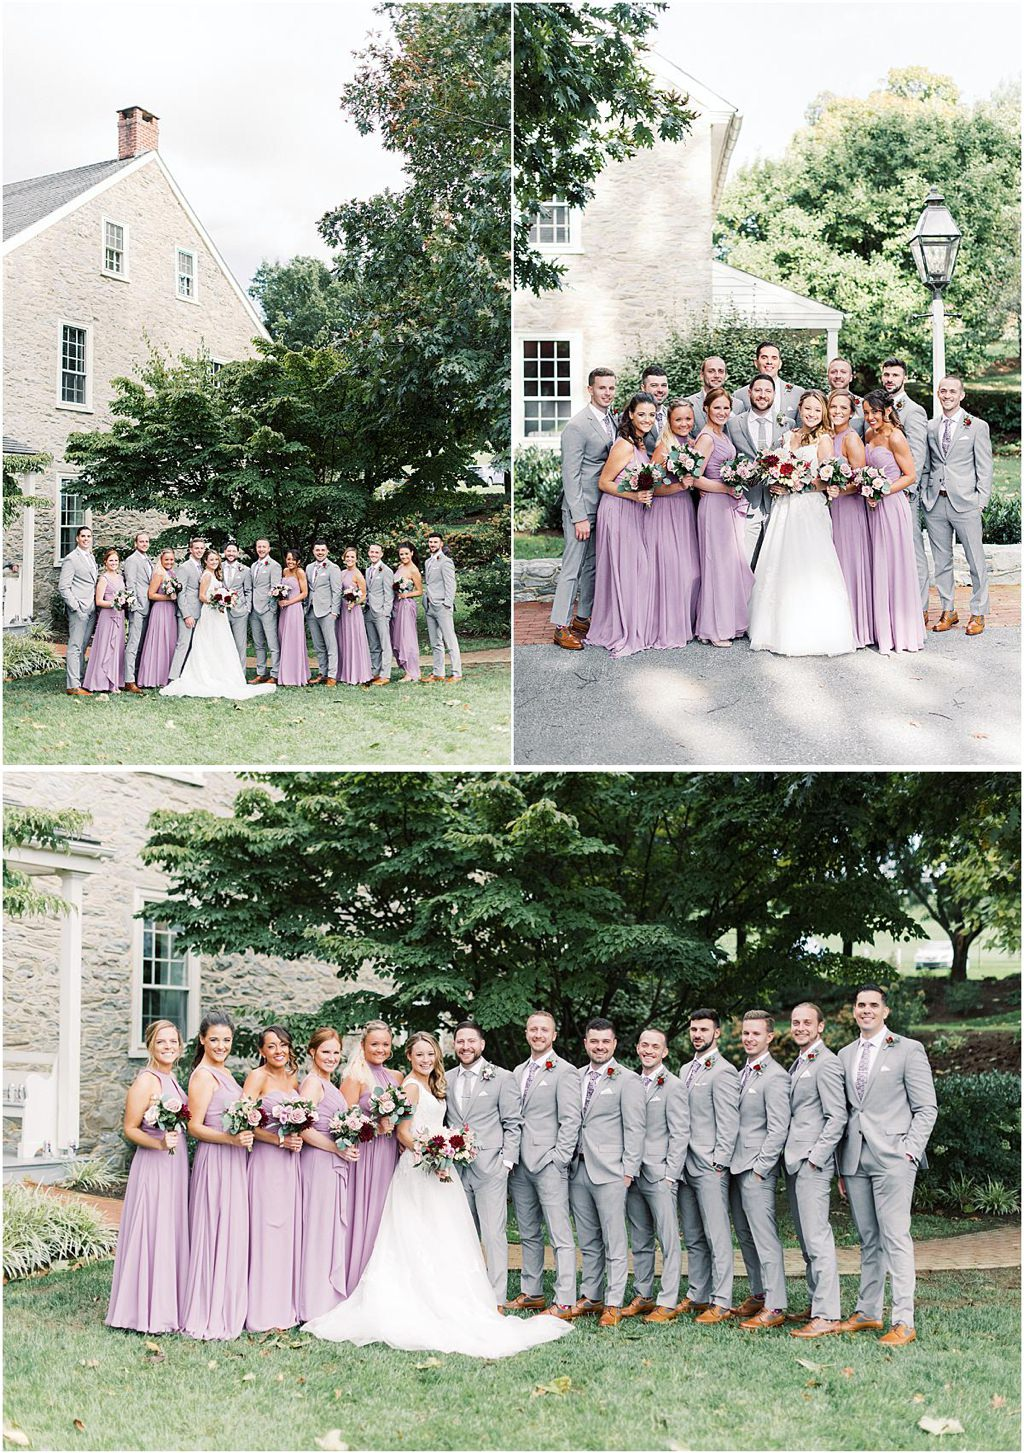 A wedding party posing for photos